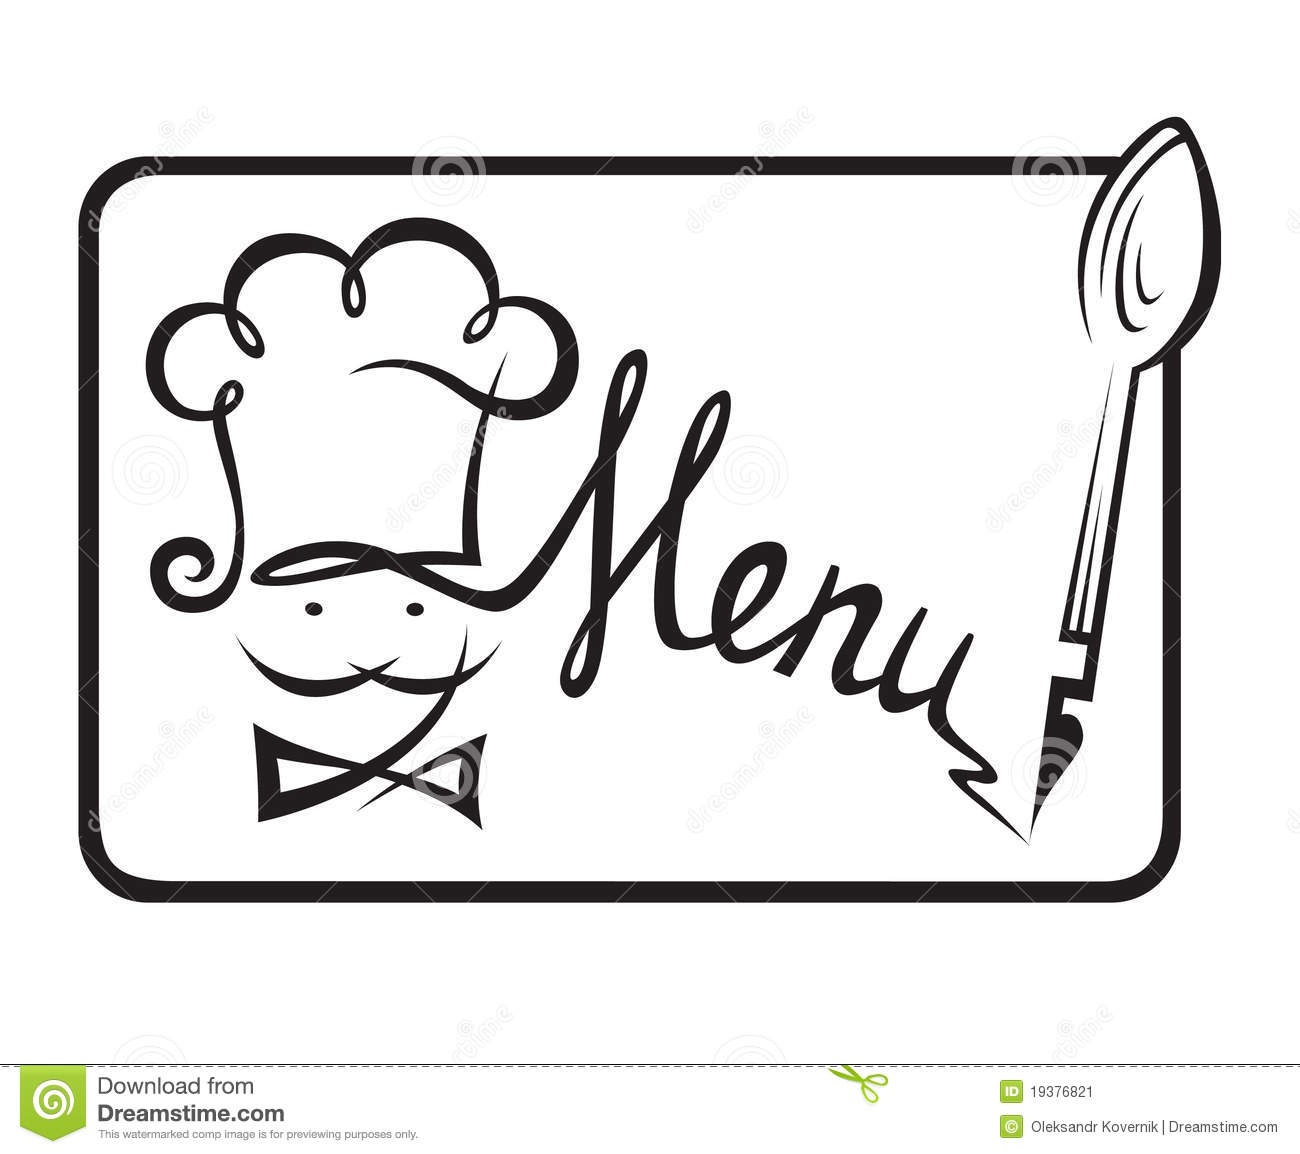 restaurant menu design stock vector. illustration of chef - 19376821